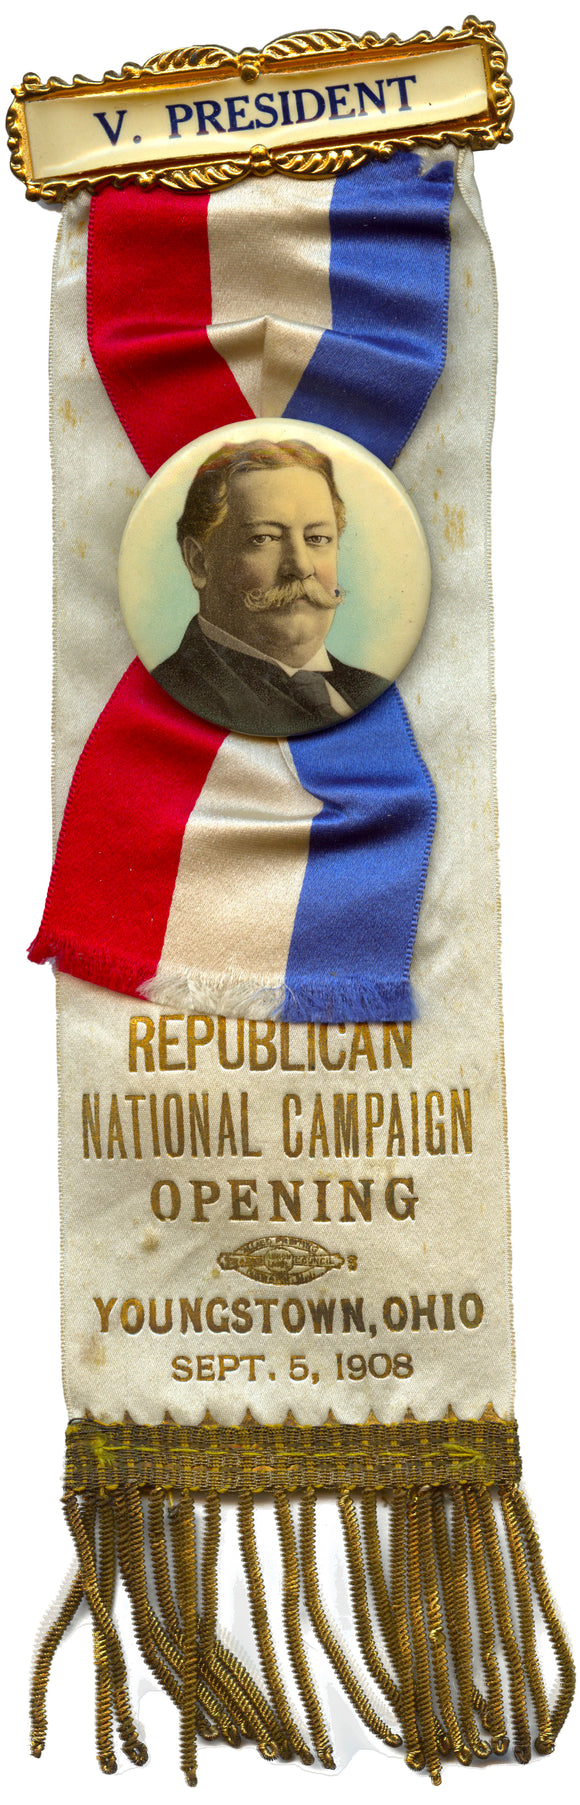 REPUBLICAN NATIONAL CAMPAIGN OPENING YOUNGSTOWN, OHIO SEPT. 5, 1908